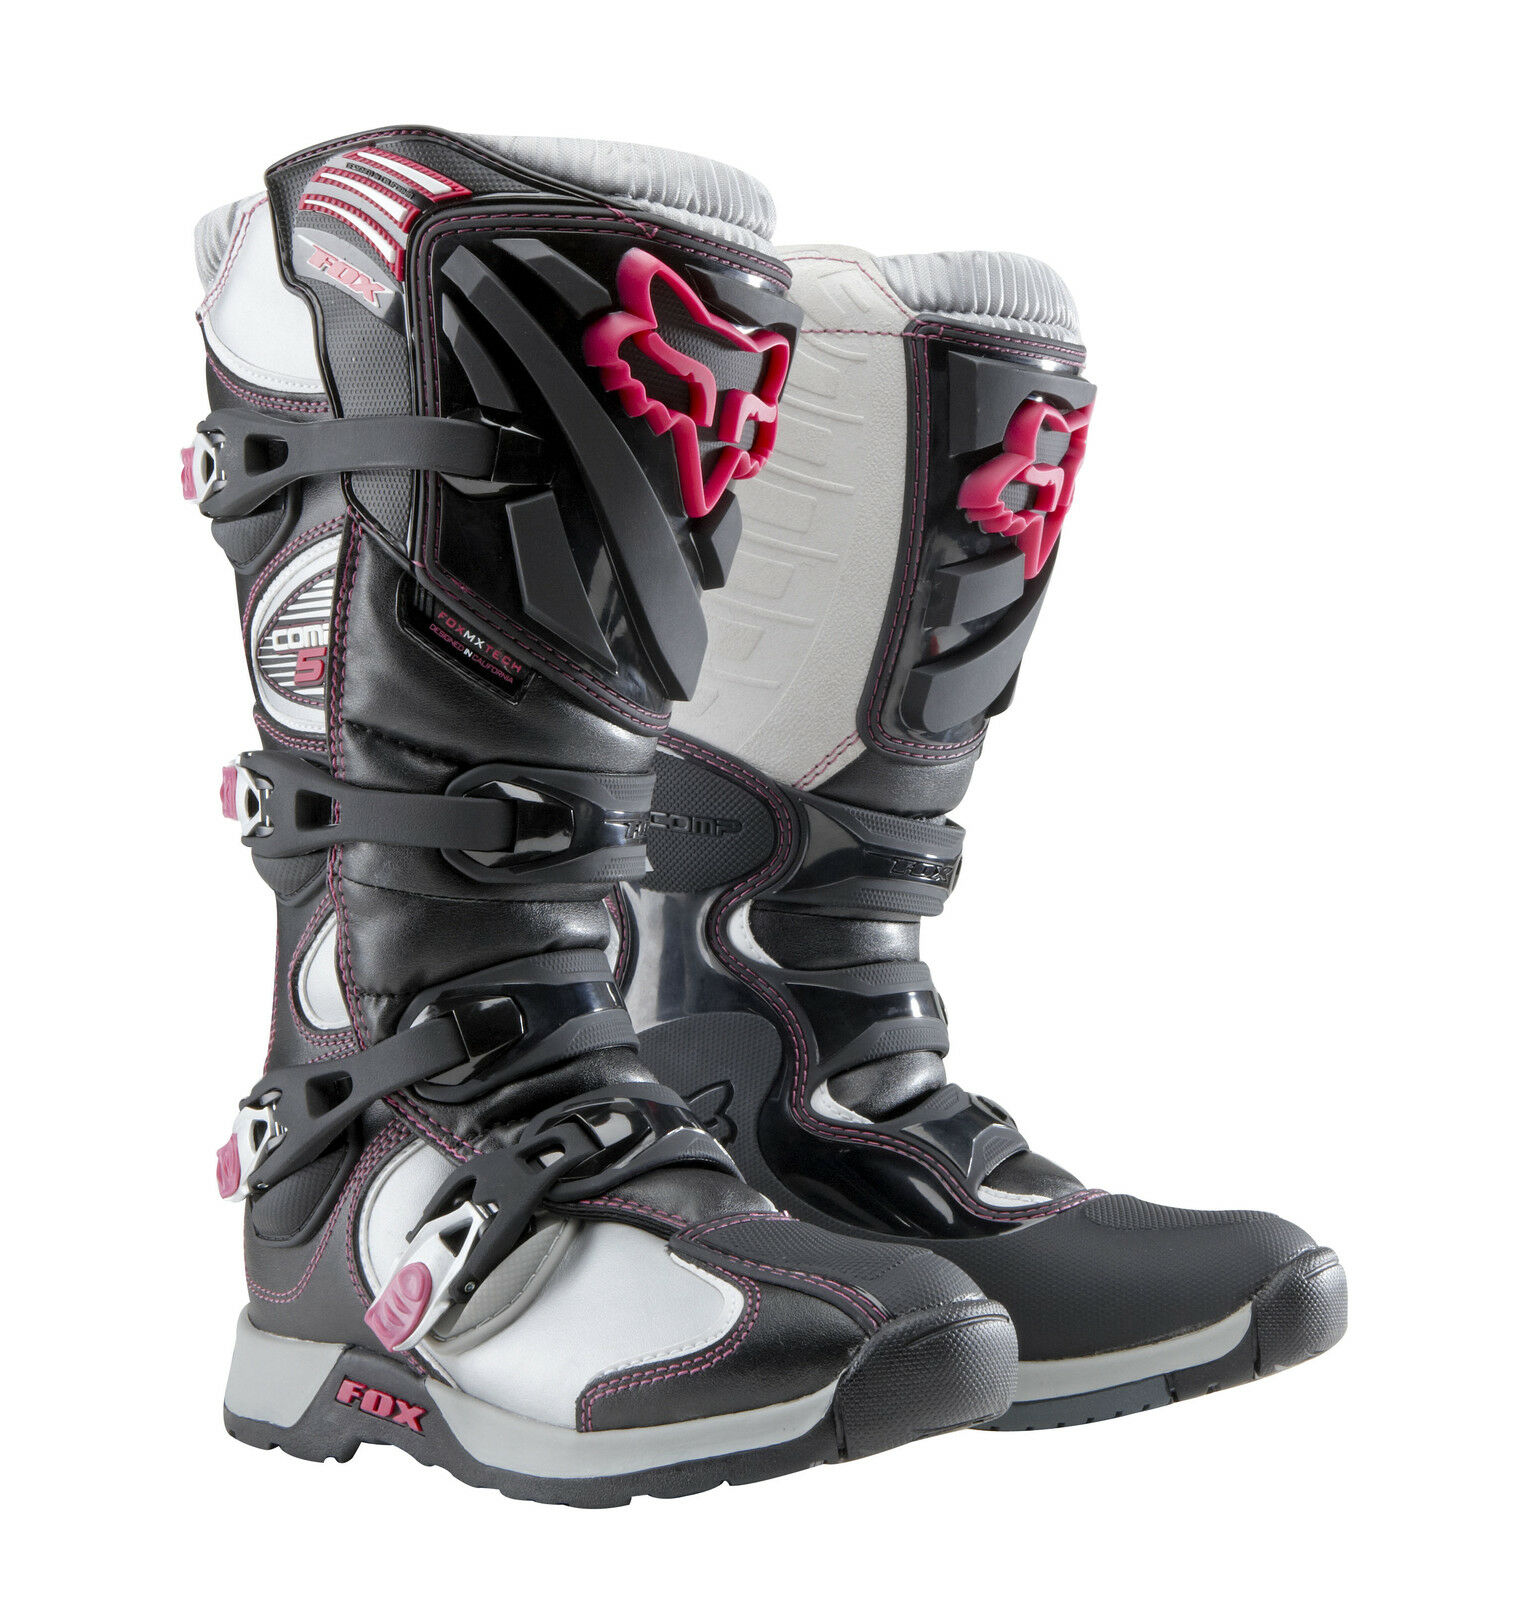 Ladies quad boots